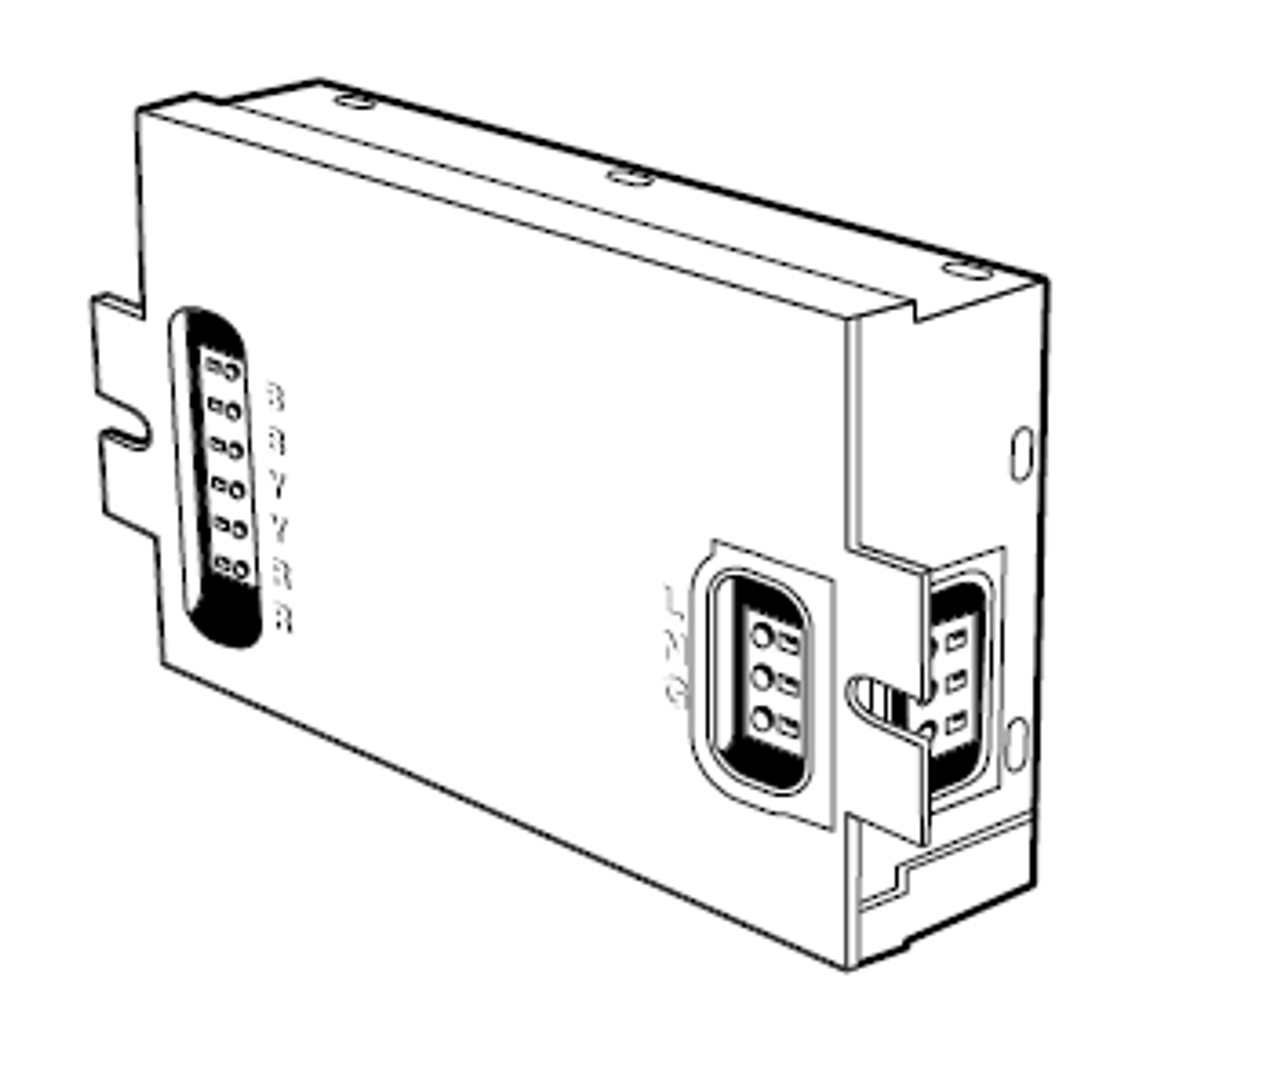 ct218unvme triad triad c213unvme bottom and side exit ct213unvme two lamp wiring  [ 1280 x 1073 Pixel ]